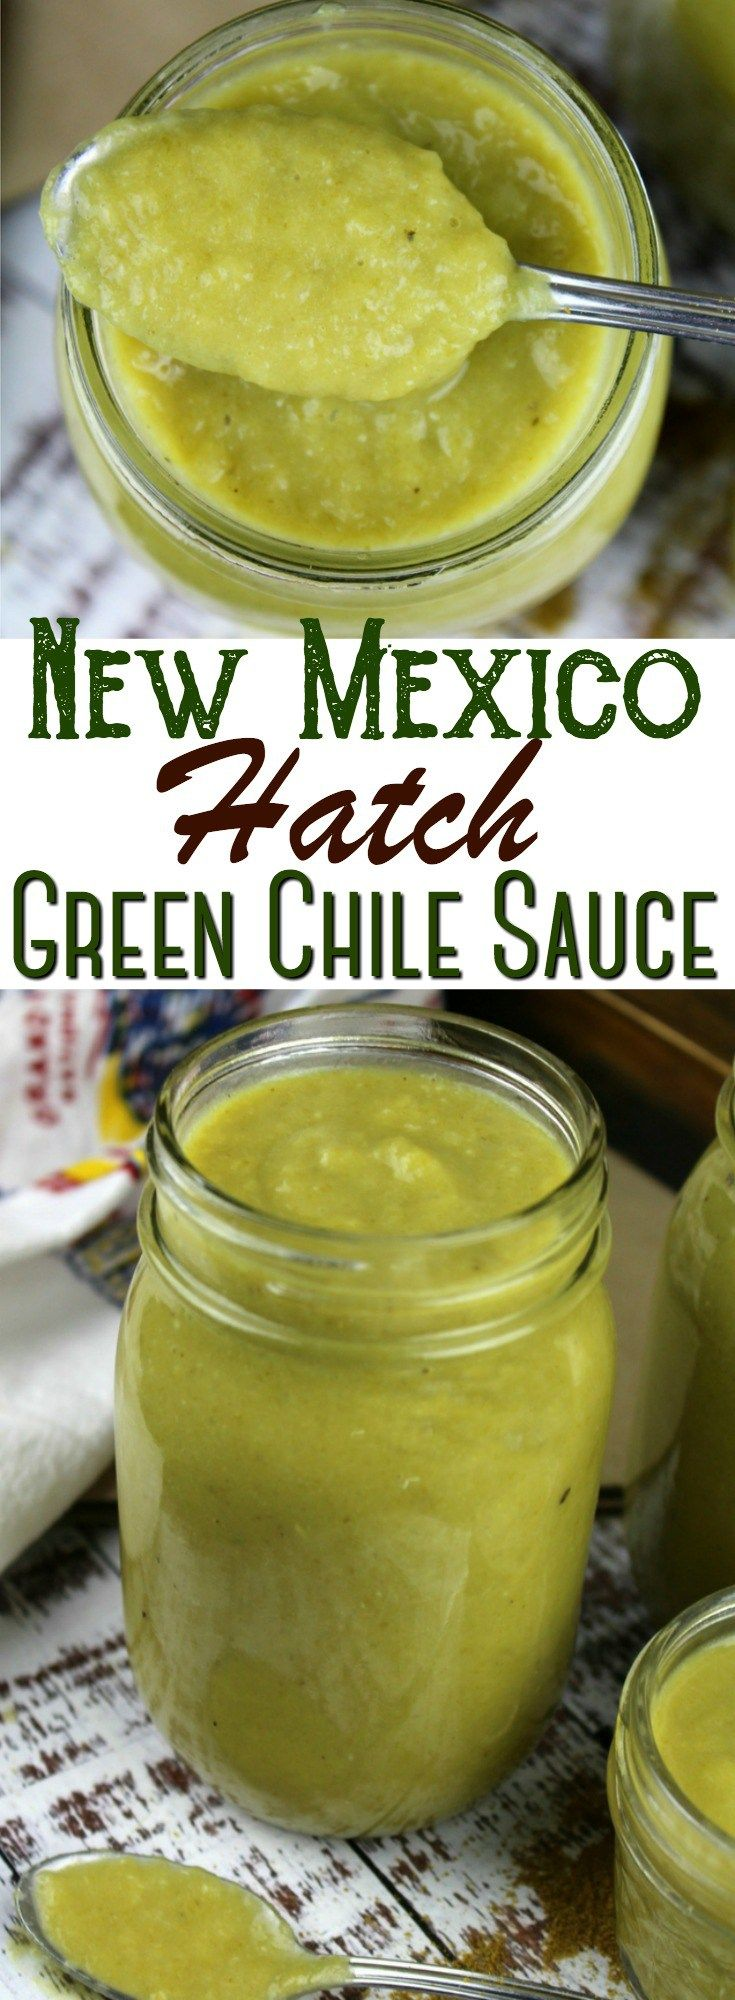 Bring a taste of New Mexico to your table with this traditional Hatch green chile sauce! It's incredible on burritos and enchiladas, smothered on eggs or over meat and potatoes at lunch or dinner. #Hatchchile #NewMexico #greenchile #enchiladasauce